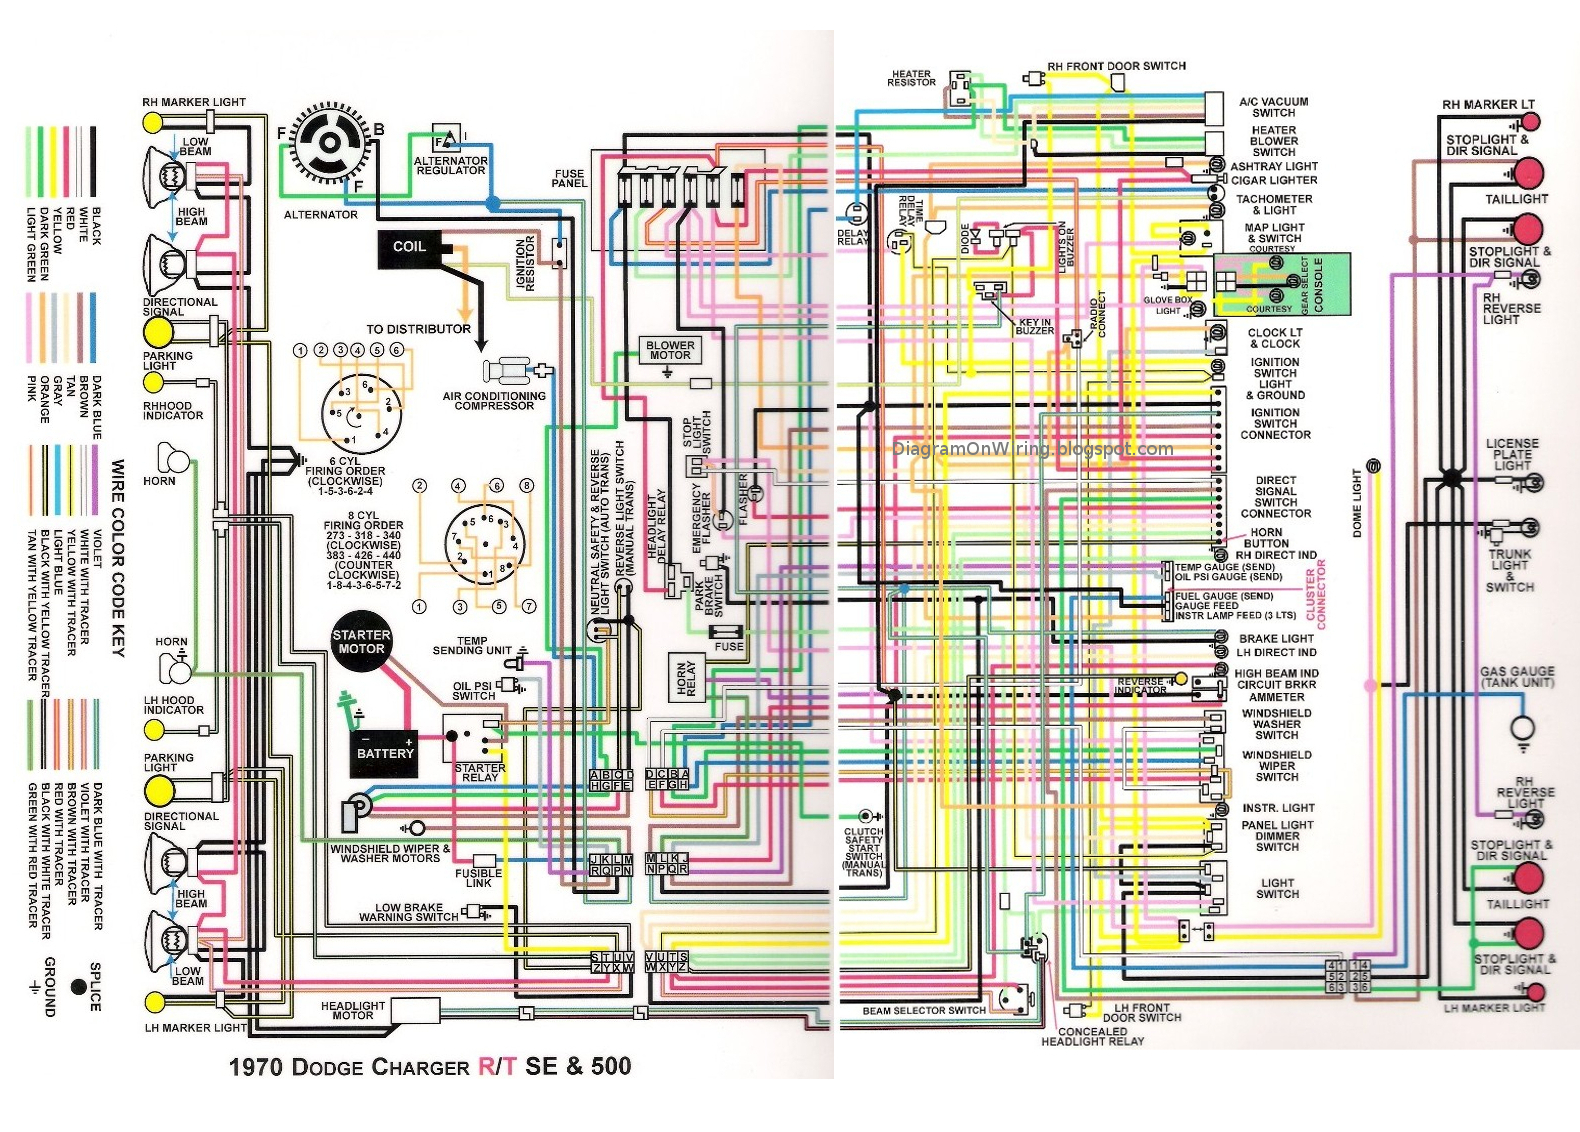 small resolution of dodge magnum engine diagram wiring library rh 72 csu lichtenhof de 2006 dodge magnum engine 2005 dodge magnum engine hose diagram